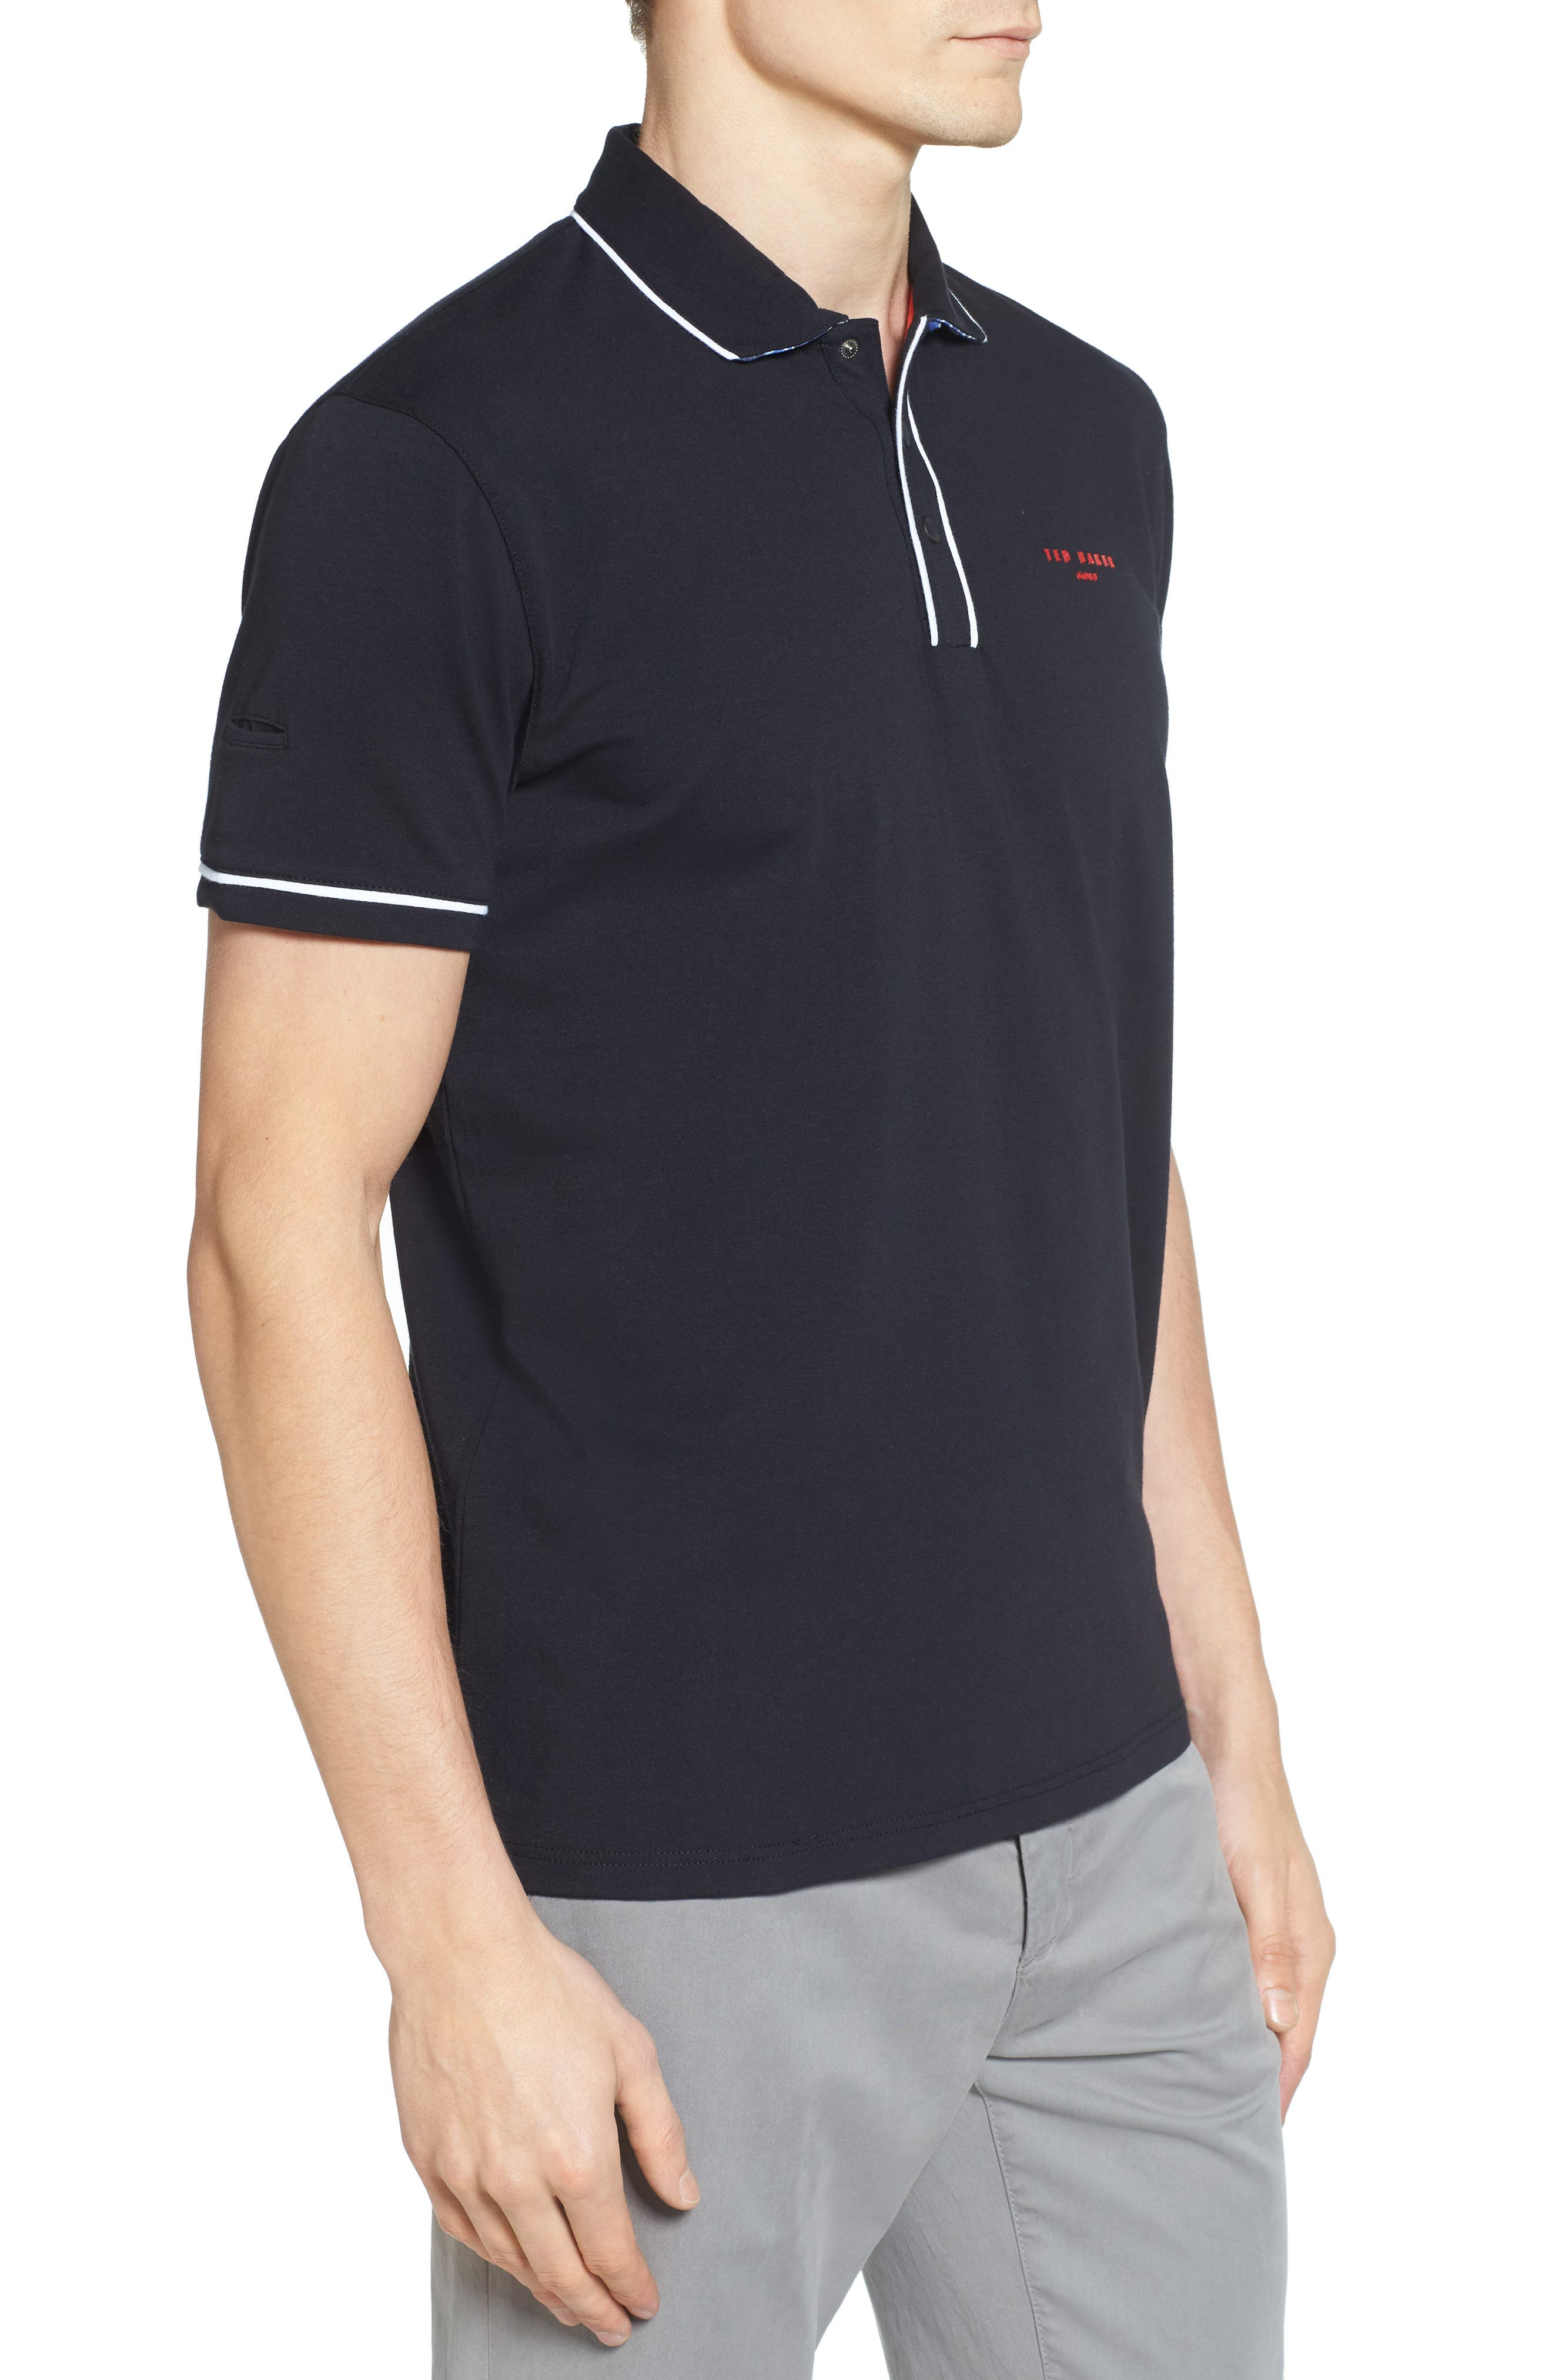 Playgo Piped Trim Golf Polo,                             Alternate thumbnail 3, color,                             001